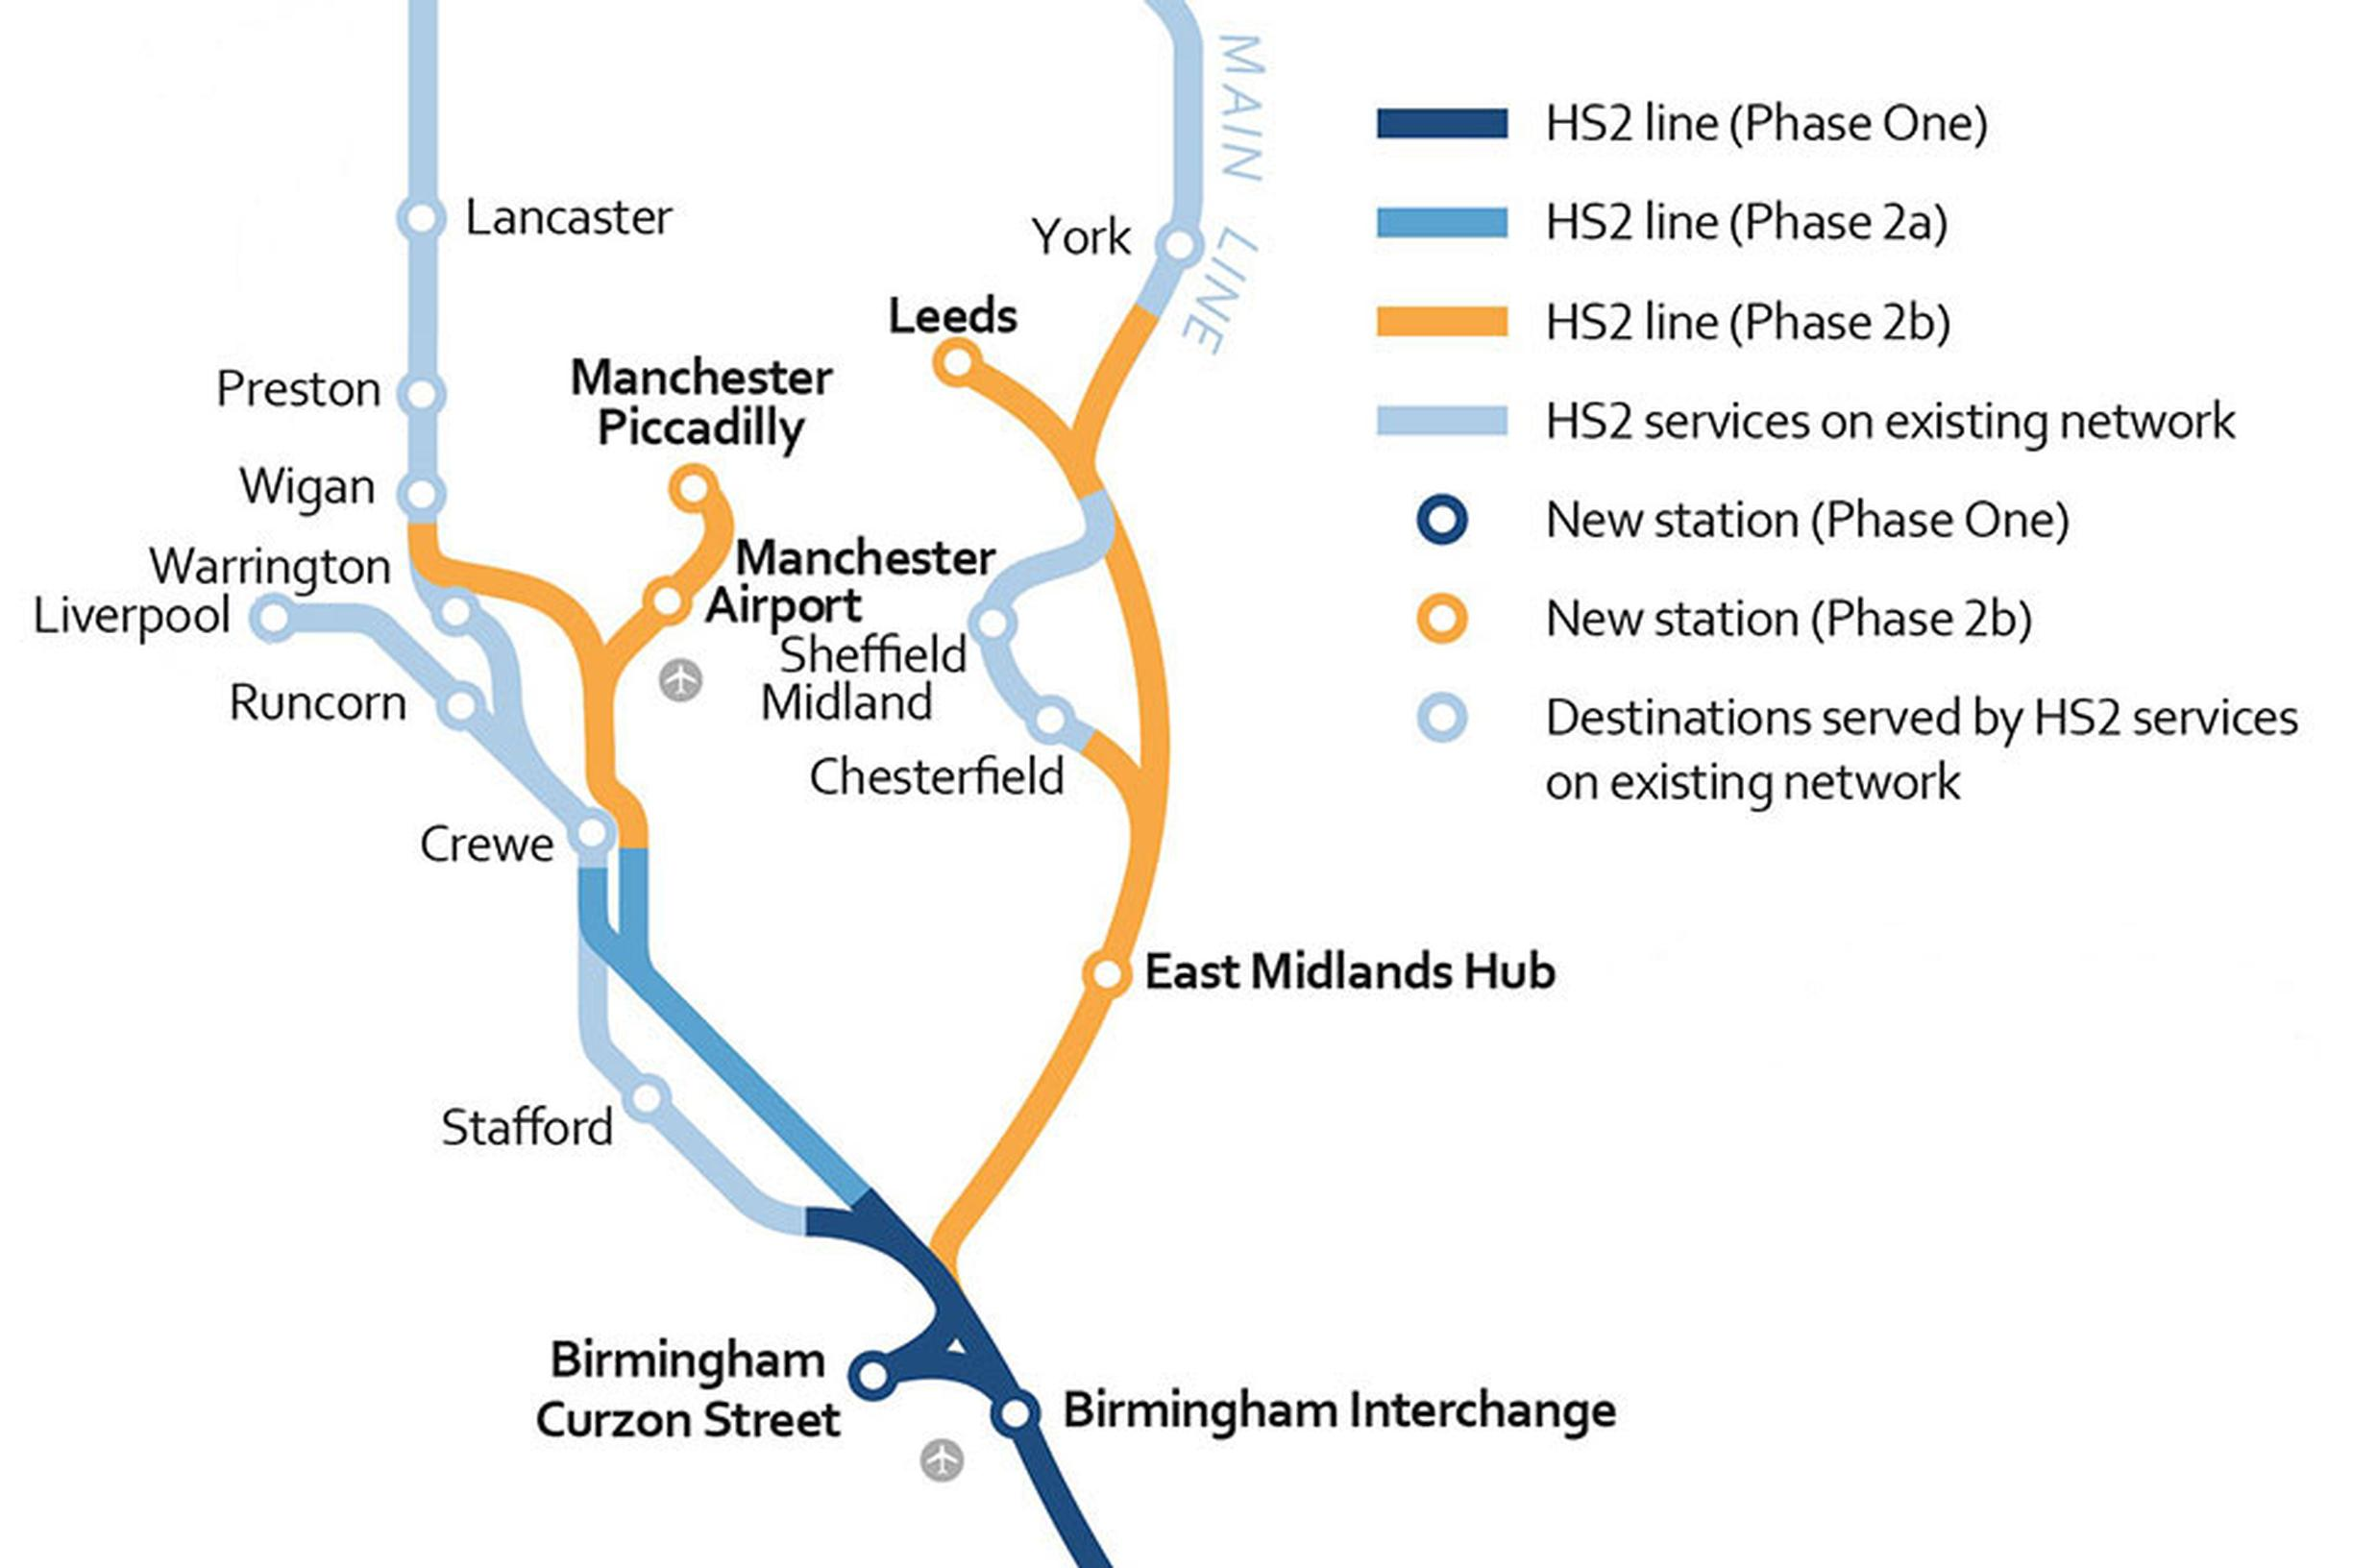 The HS2 phase 2 routes